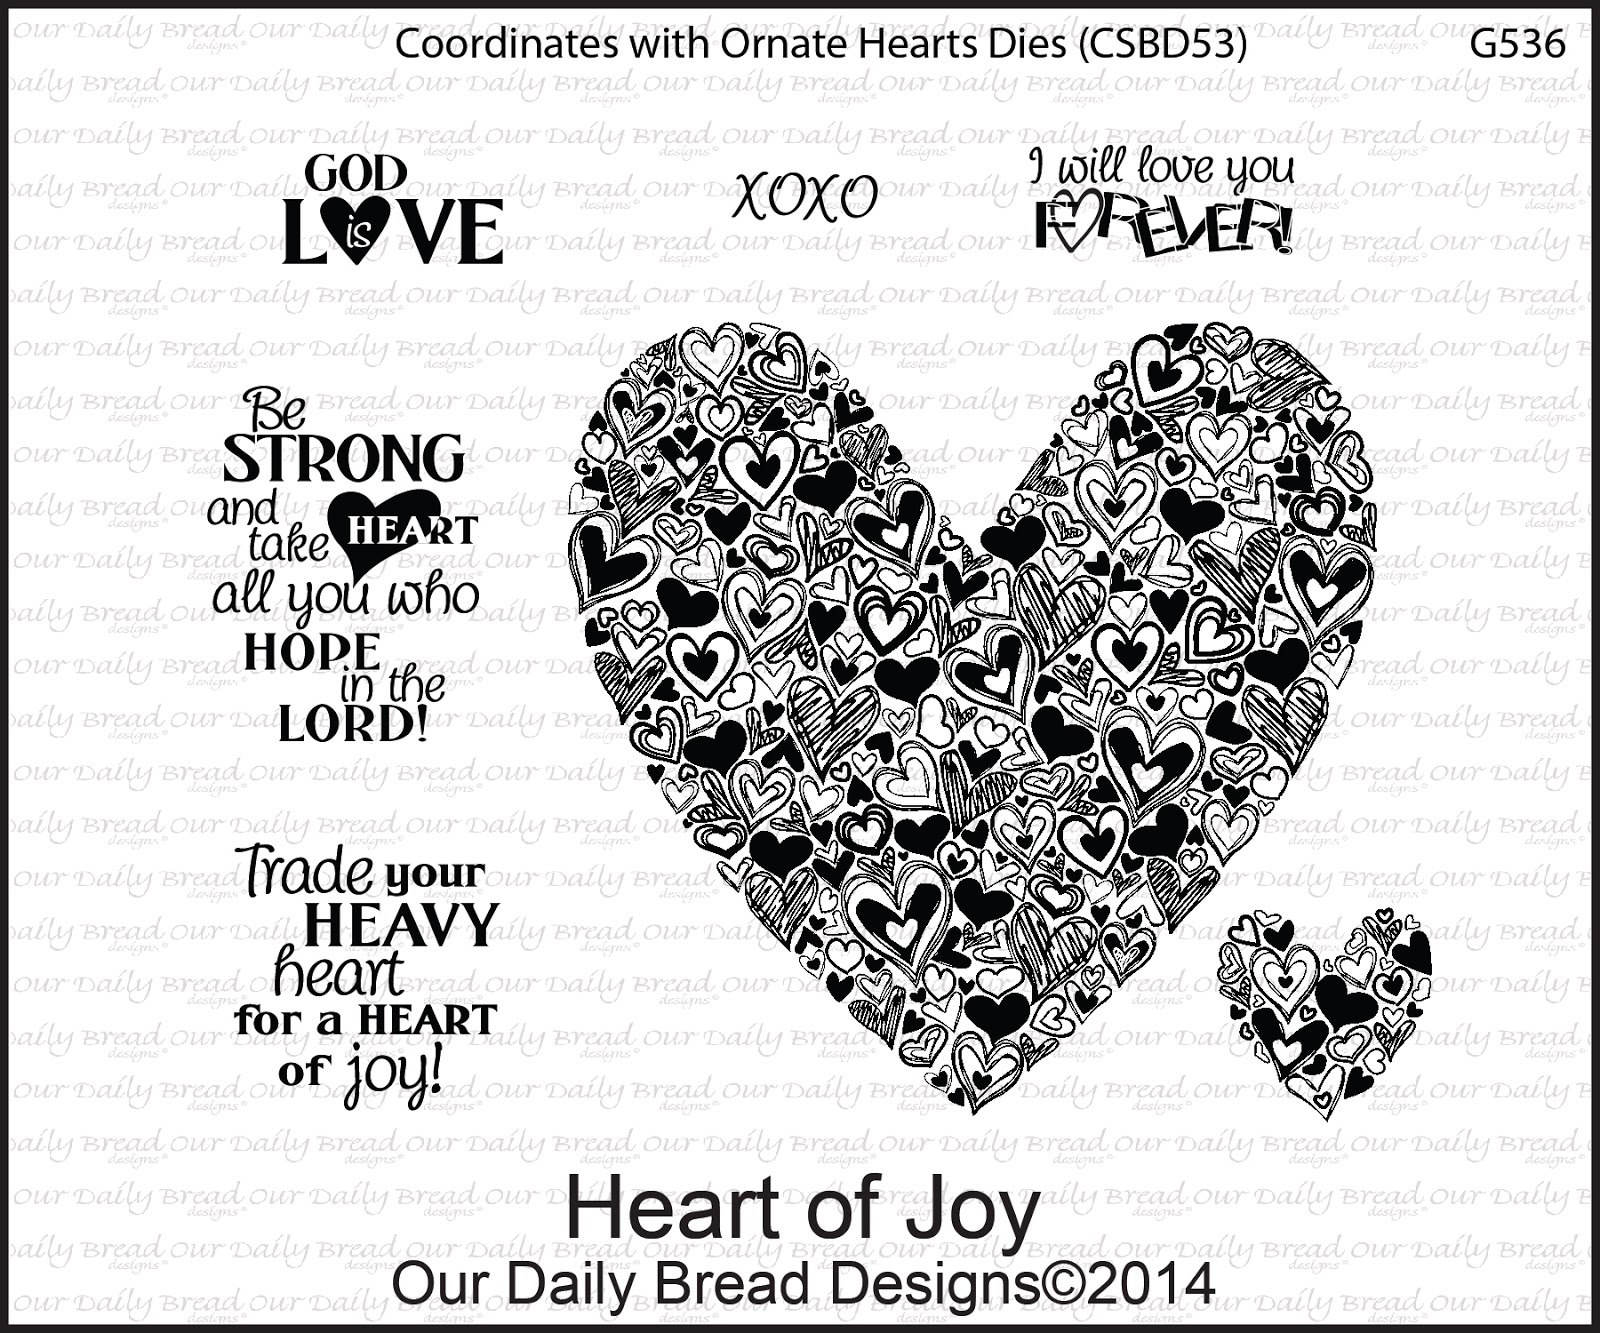 http://www.ourdailybreaddesigns.com/index.php/g536-heart-of-joy.html